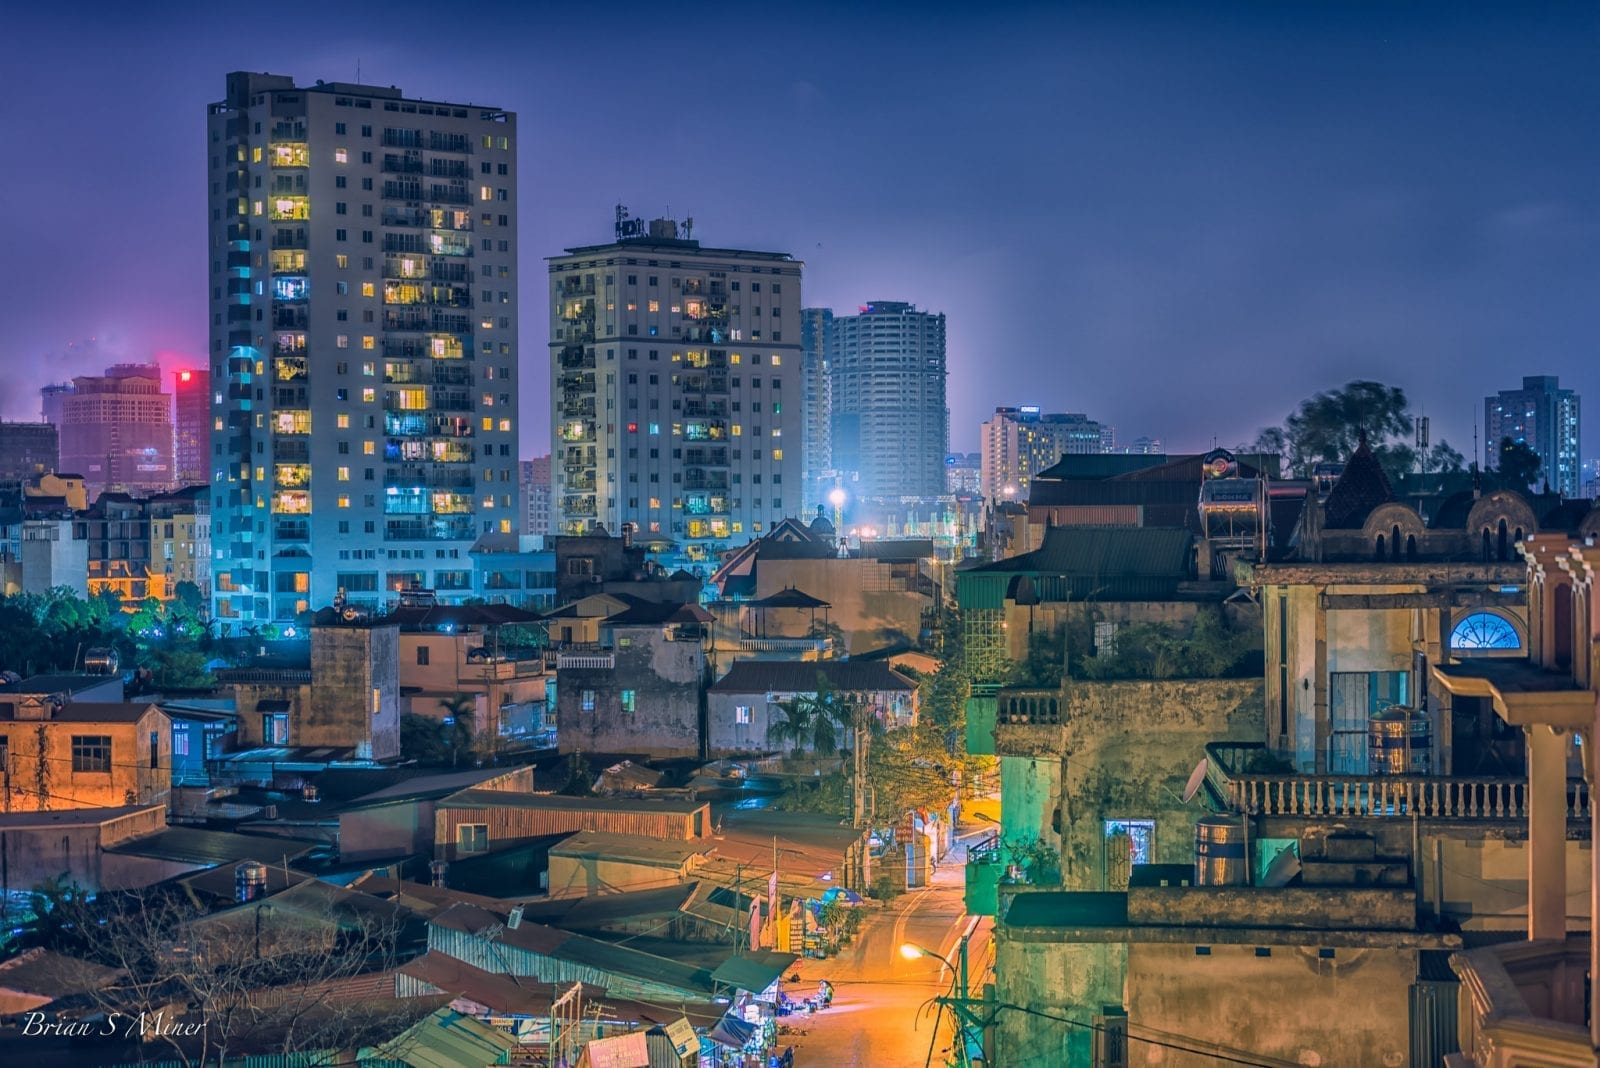 Image of buildings in Hanoi, Vietnam at night